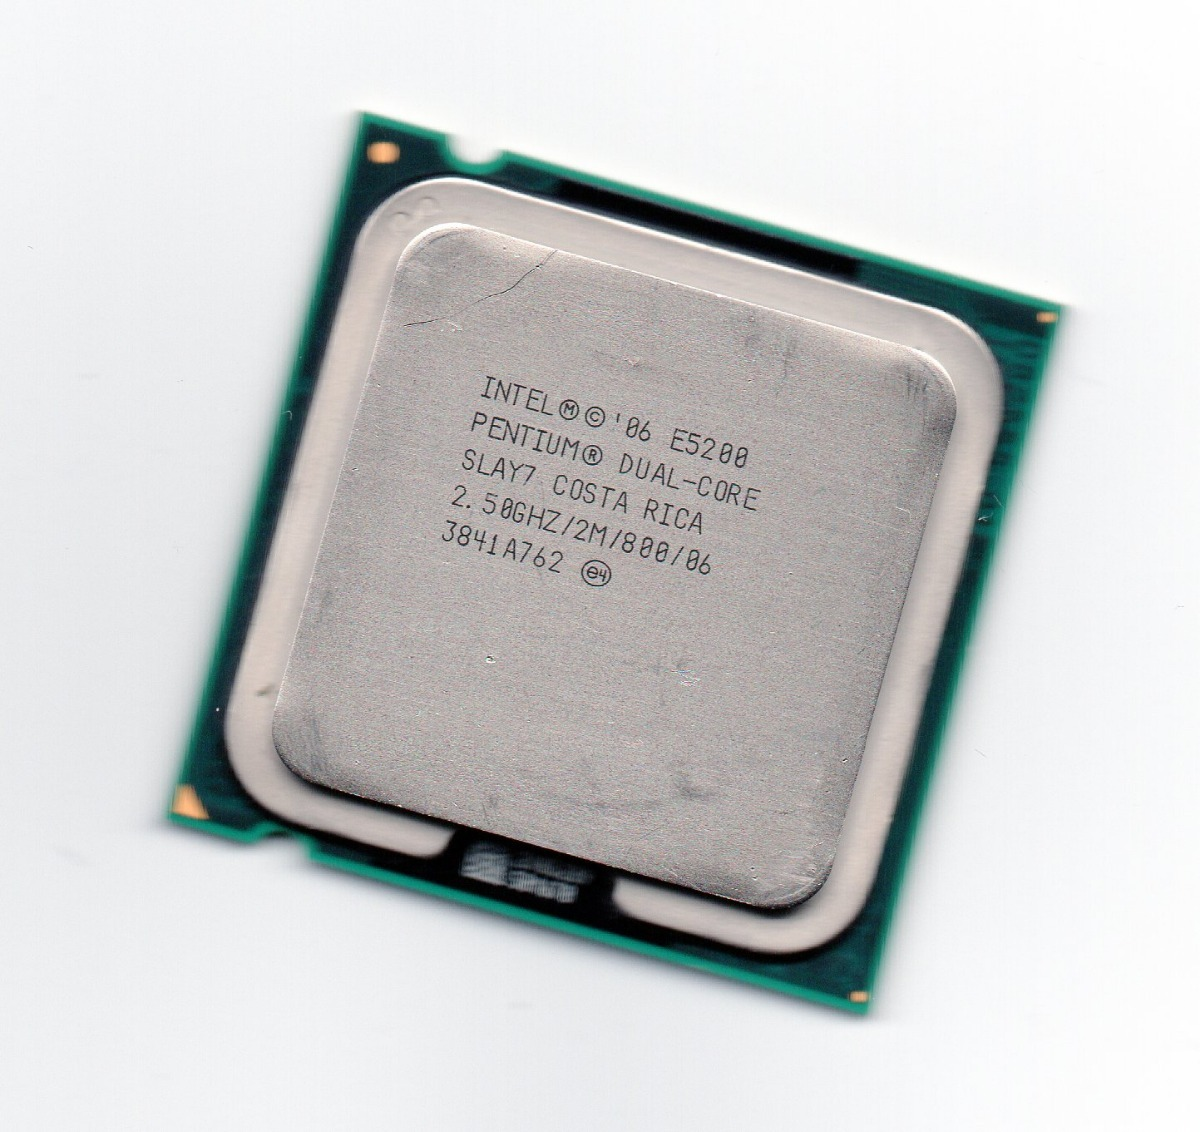 INTEL E5200 DRIVERS WINDOWS XP